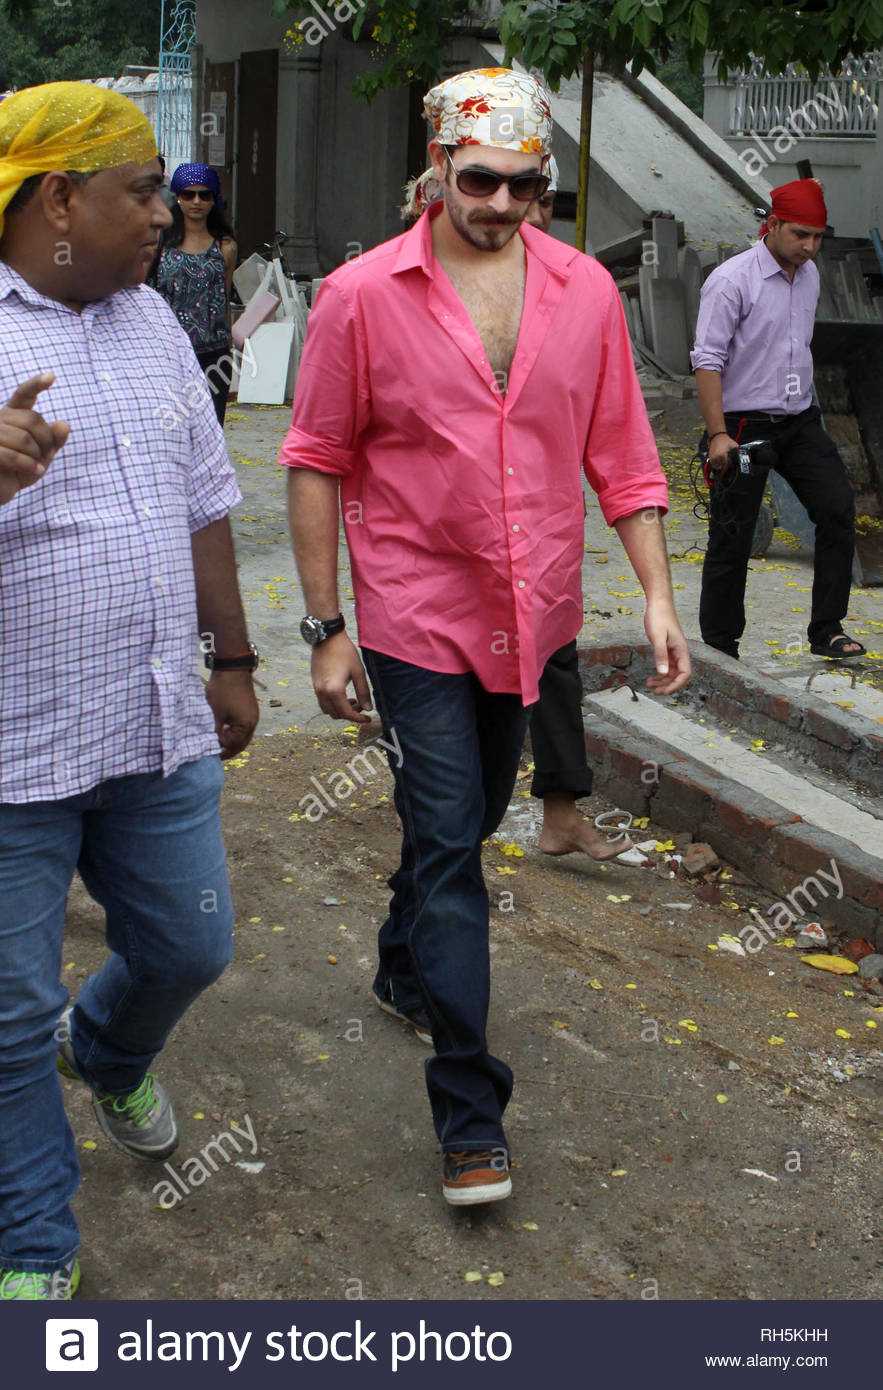 Bollywood actor Neil Nitin Mukesh arrives to offer prayer at the Bangla Saheb Gurudwara for the success of his latest movie Shortcut Romeo, in New Delhi, India on June 18, 2013. Shortcut Romeo, scheduled for release on June 21, is a romantic crime thriller produced by Susi Ganeshan which is a Hindi remake of the filmmakerÕs own Tamil film Thiruttu Payale, starring Neil Nitin Mukesh, Puja Gupta and Ameesha Patel. The film was screened at Marche du Film at Cannes Film Festival in May 2013. (Imtiyaz Khan) - Stock Image